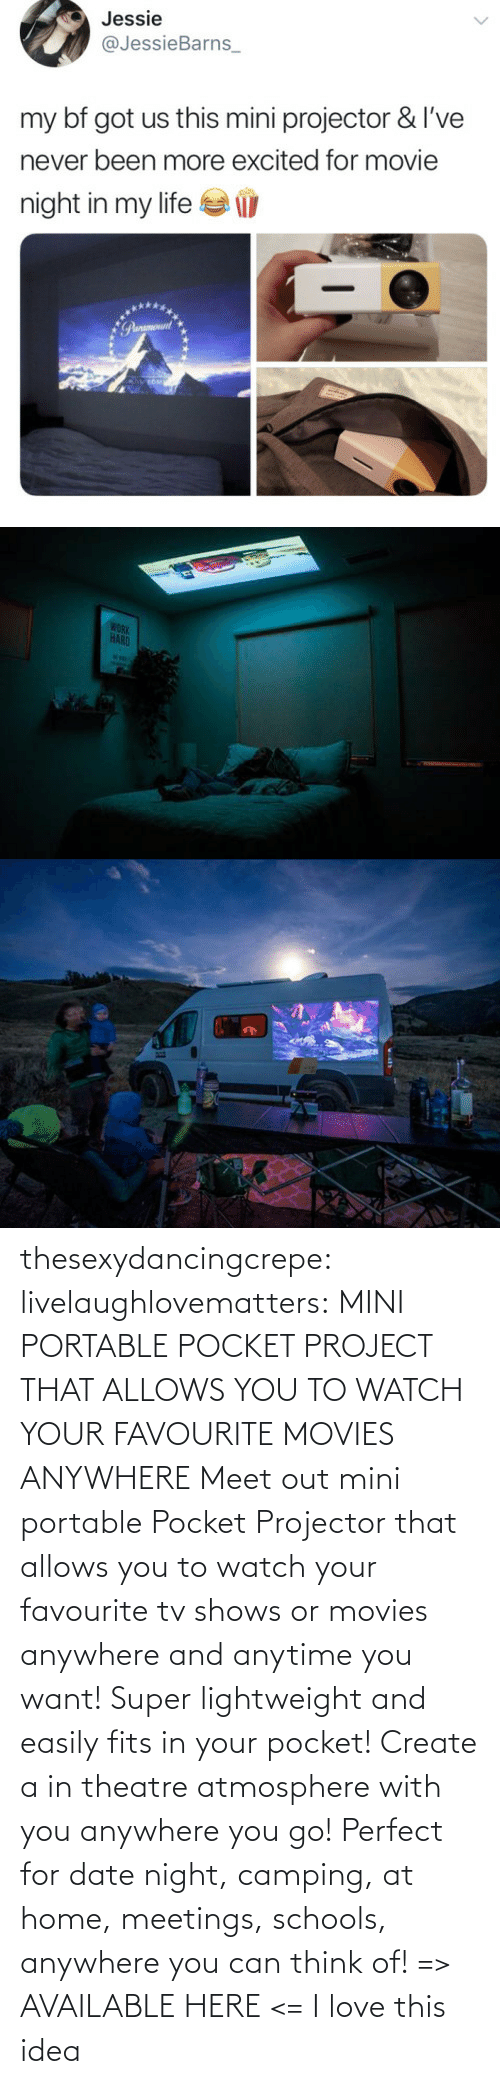 Easily: thesexydancingcrepe: livelaughlovematters:   MINI PORTABLE POCKET PROJECT THAT ALLOWS YOU TO WATCH YOUR FAVOURITE MOVIES ANYWHERE Meet out mini portable Pocket Projector that allows you to watch your favourite tv shows or movies anywhere and anytime you want! Super lightweight and easily fits in your pocket! Create a in theatre atmosphere with you anywhere you go! Perfect for date night, camping, at home, meetings, schools, anywhere you can think of! => AVAILABLE HERE <=    I love this idea